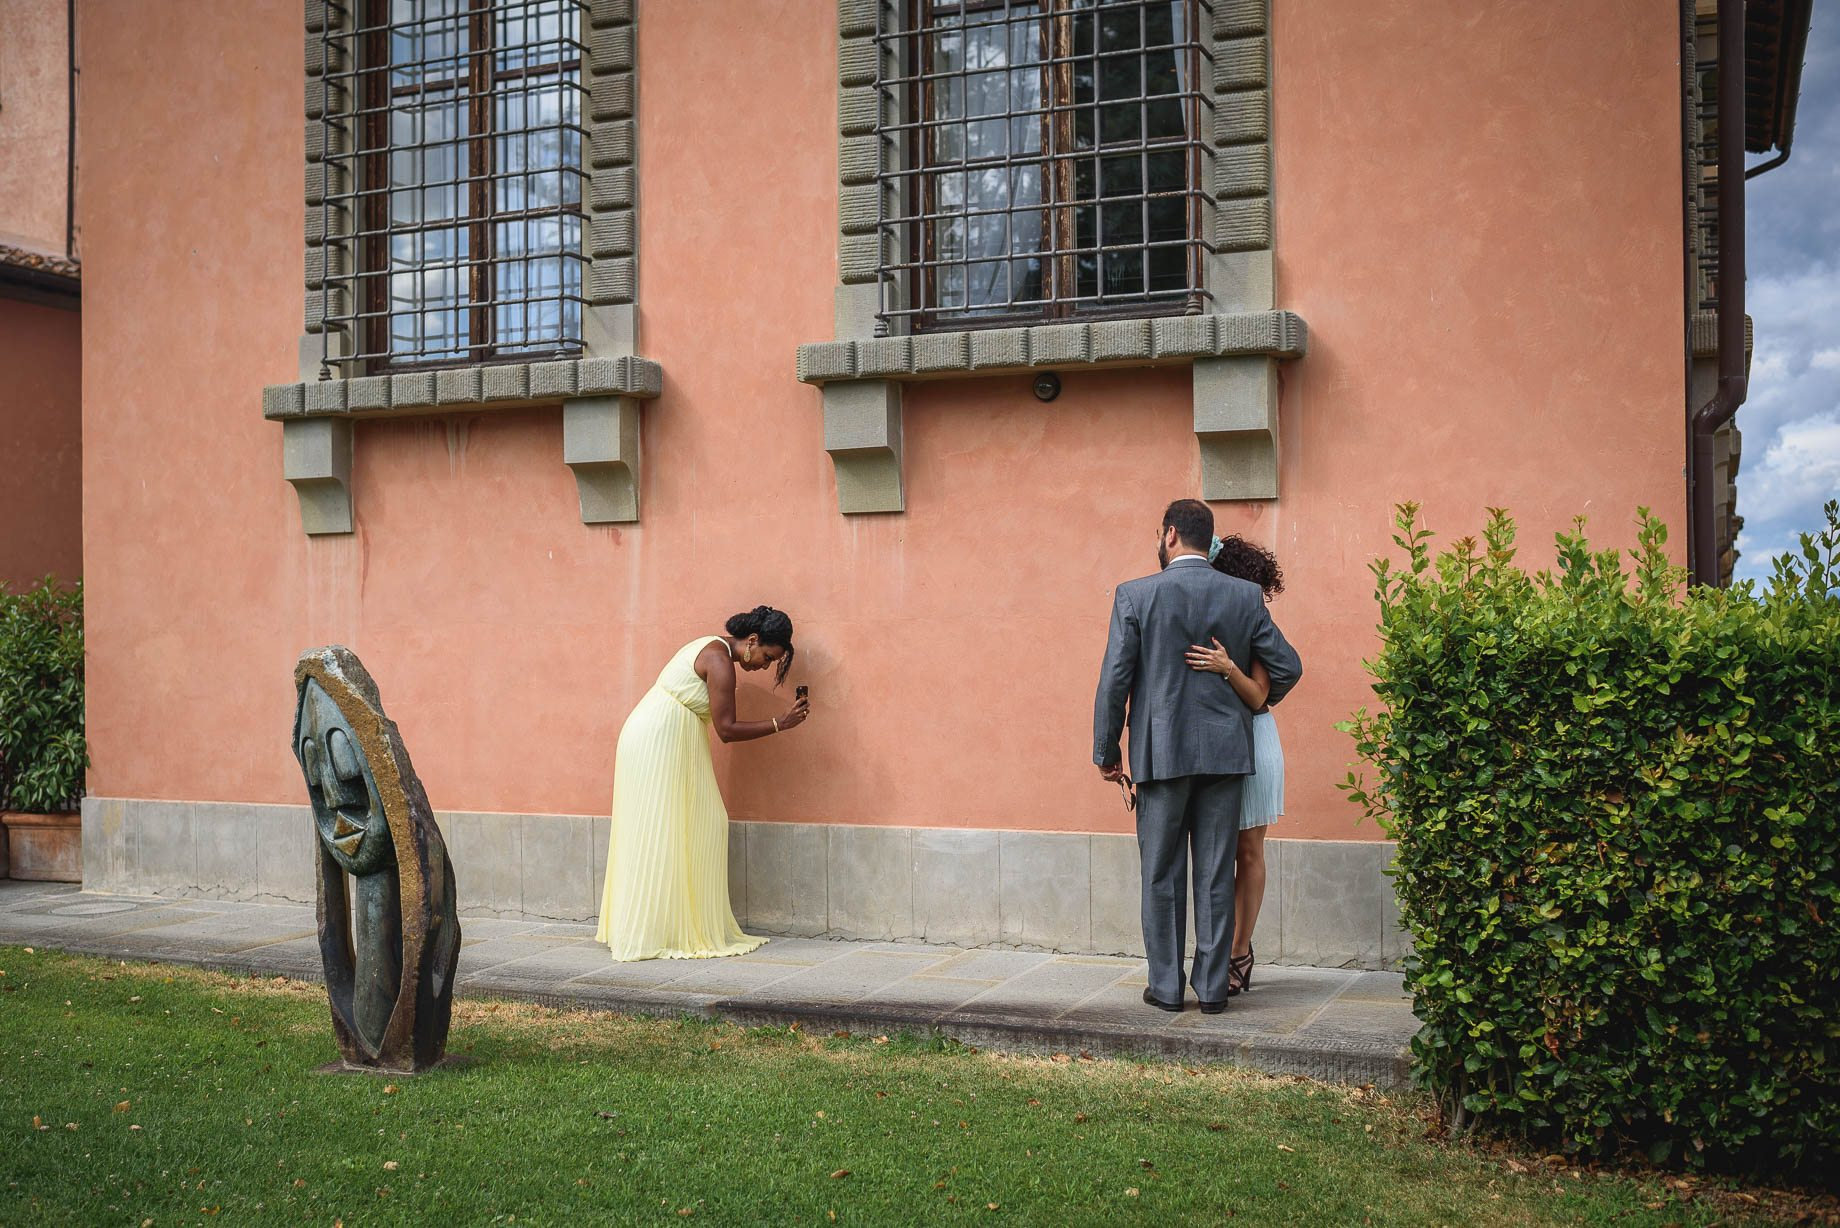 Tuscany wedding photography - Roisin and Moubin - Guy Collier Photography (65 of 251)